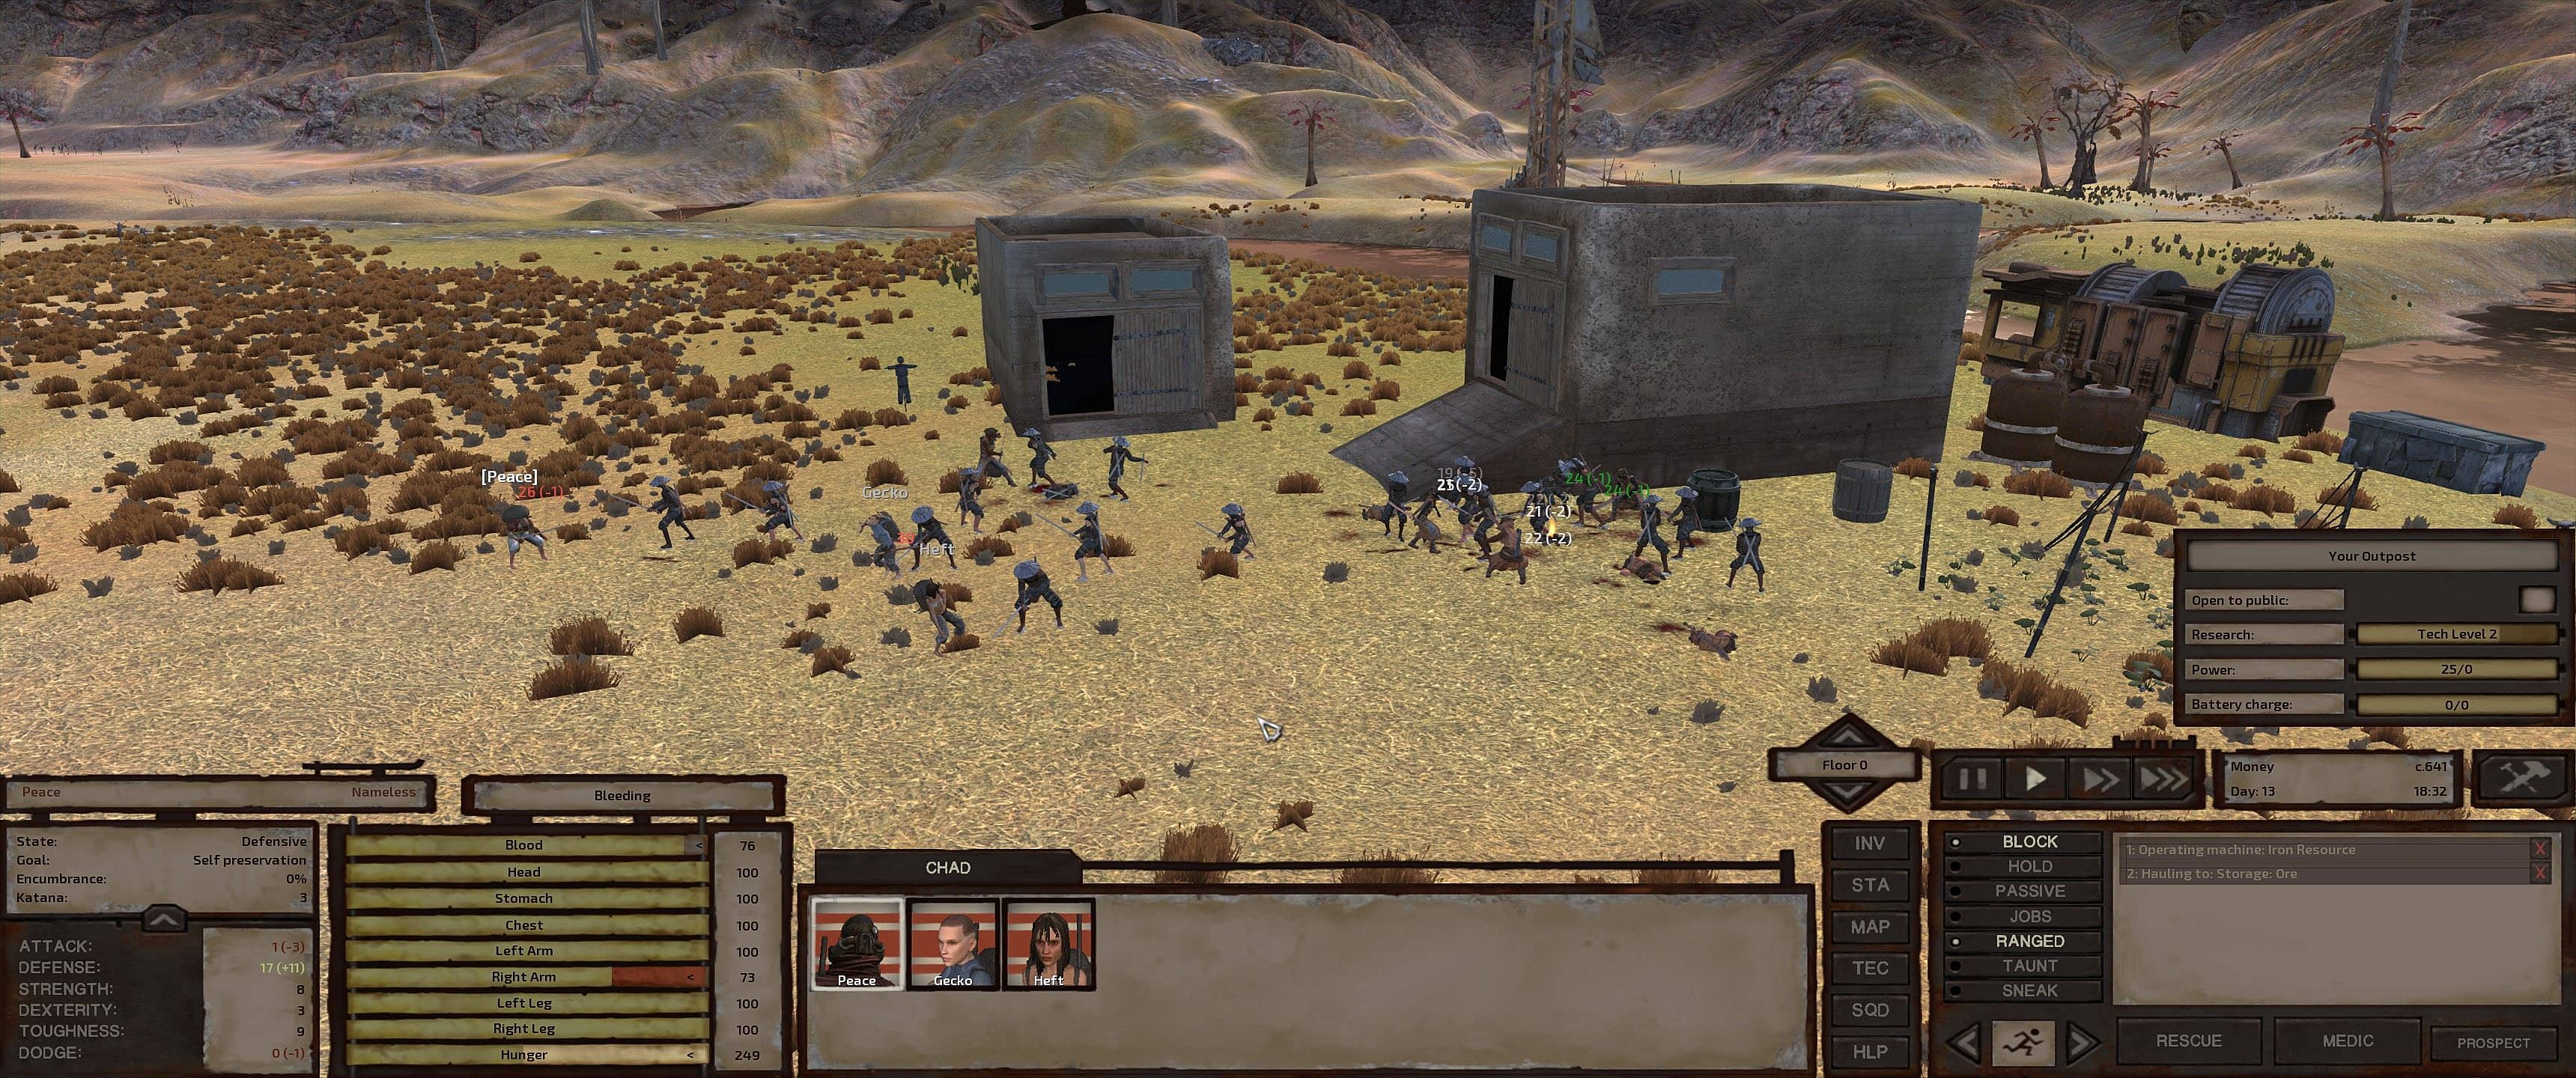 How to Become a Competent Fighter in Kenshi | Kenshi